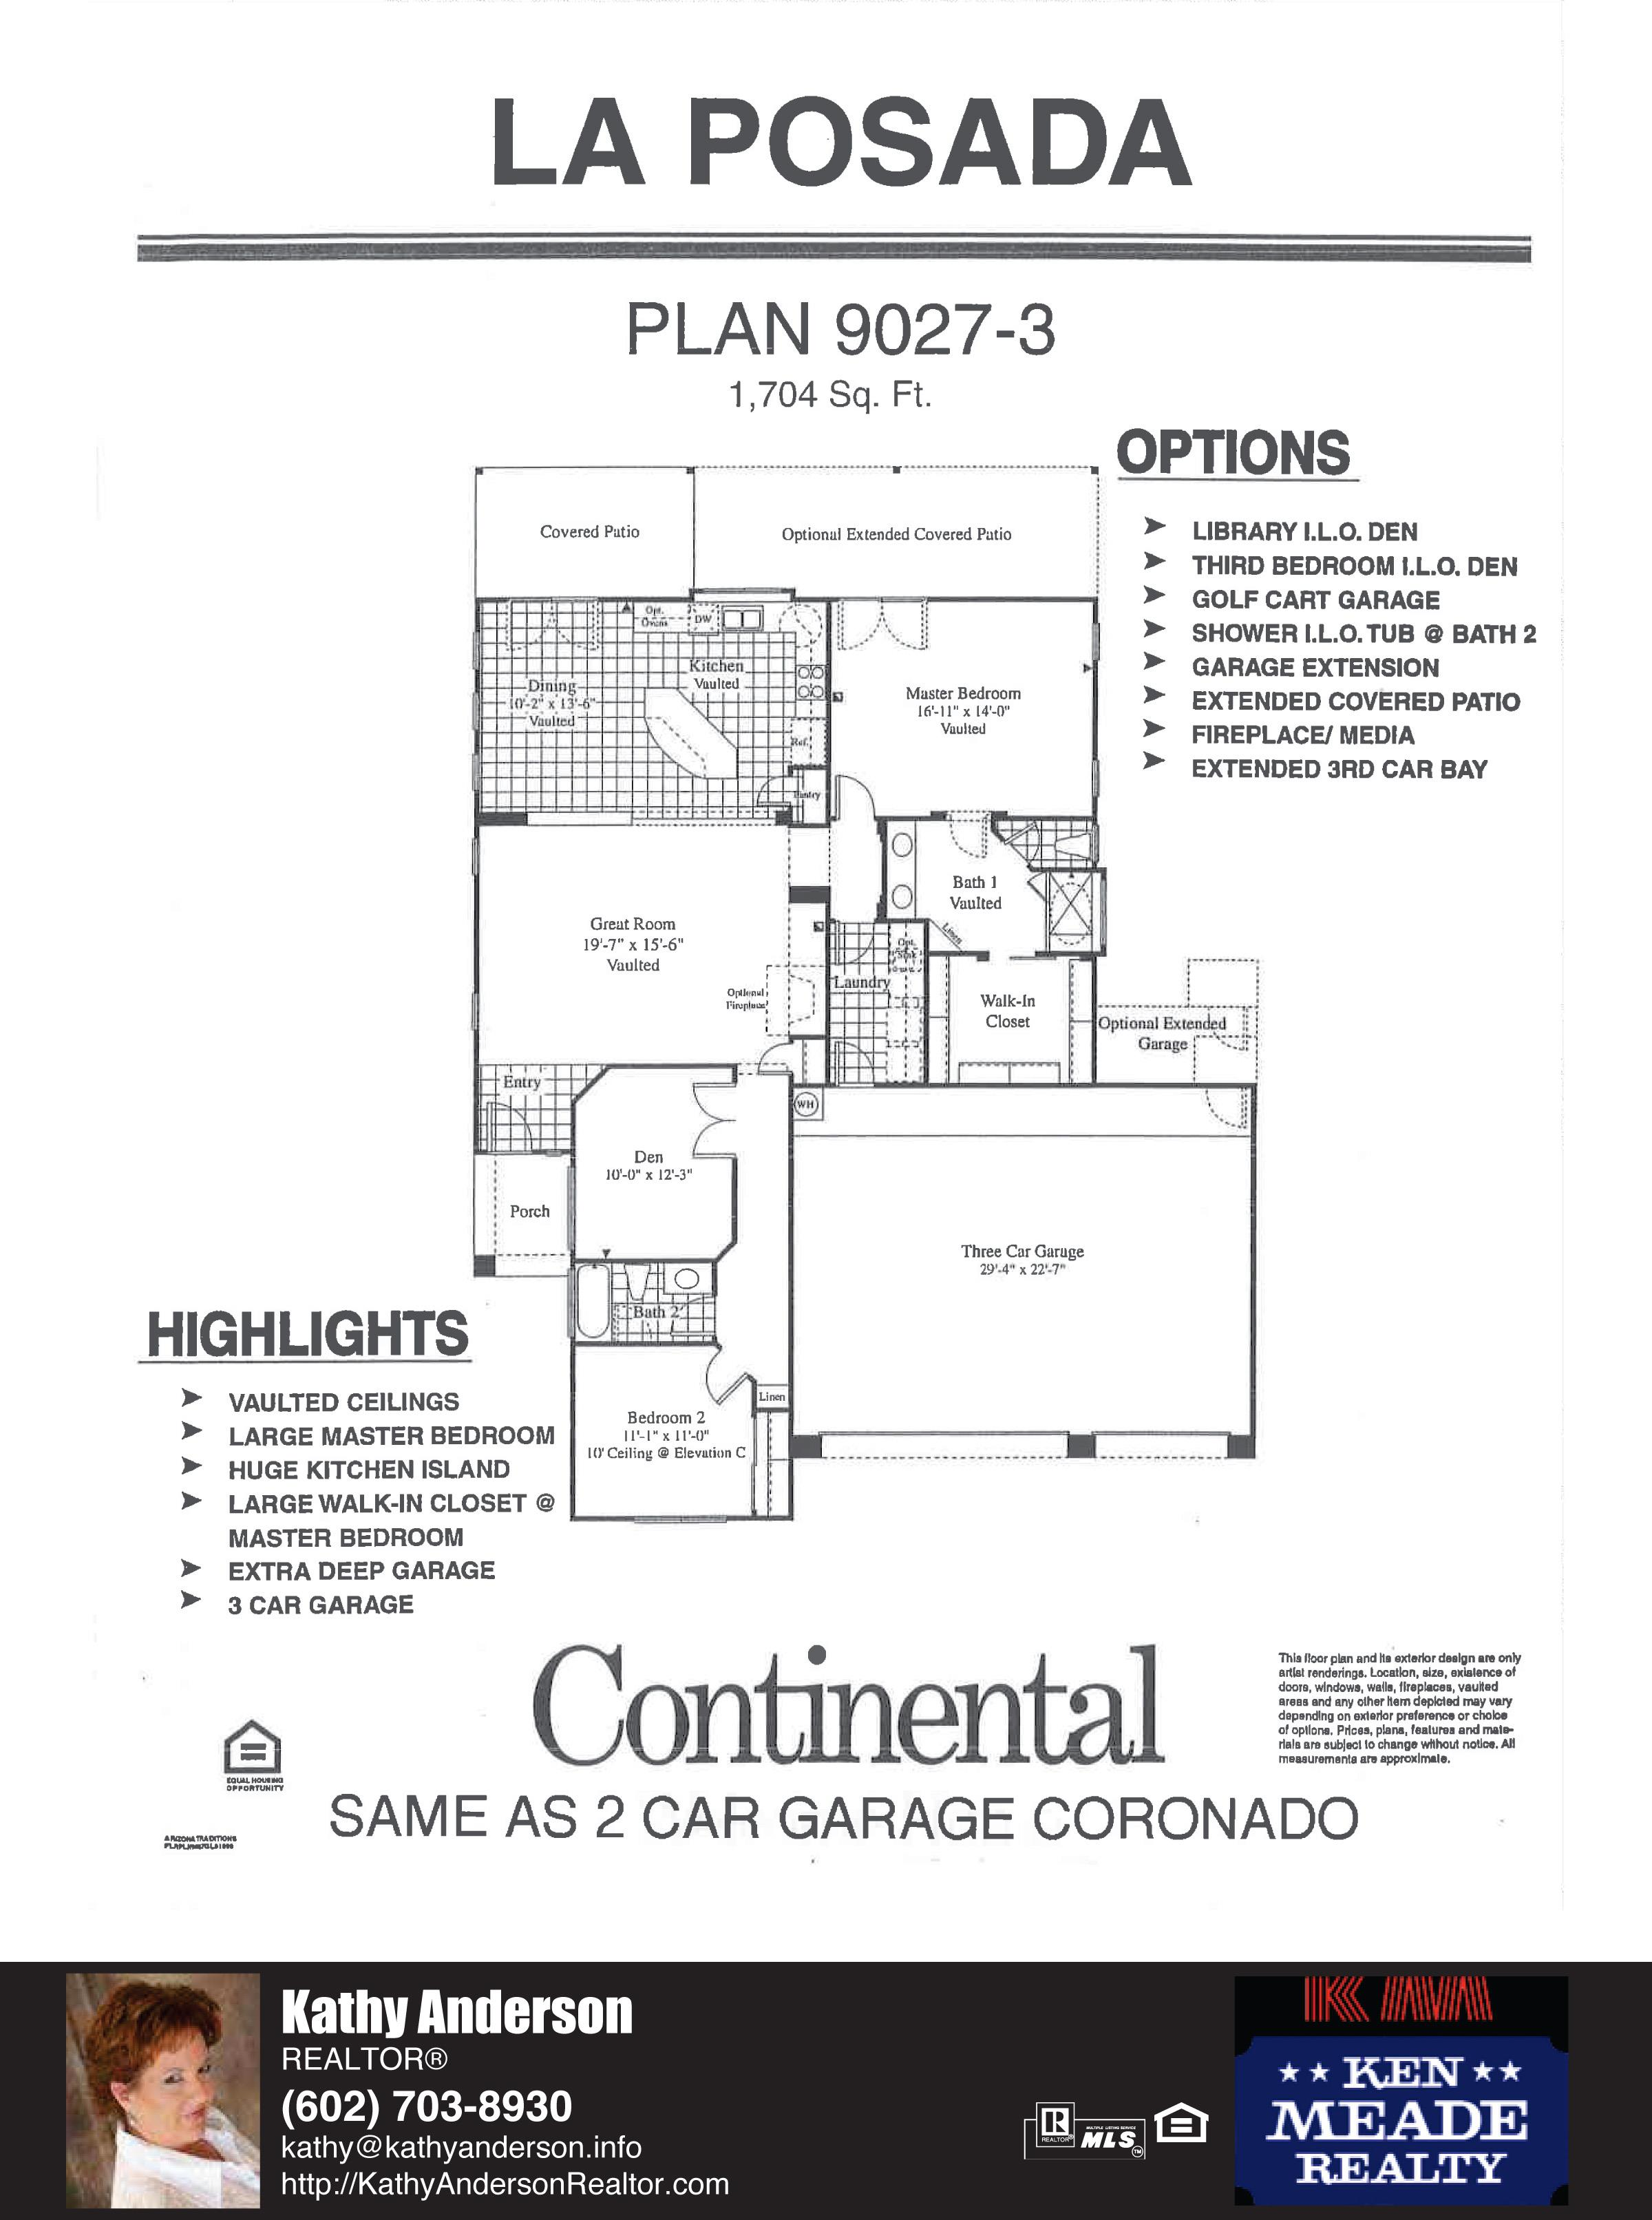 Arizona Traditions La Posada Floor Plan Model Home Plans Floorplans Models in Surprise Arizona AZ Top Ken Meade Realty Realtor agent Kathy Anderson